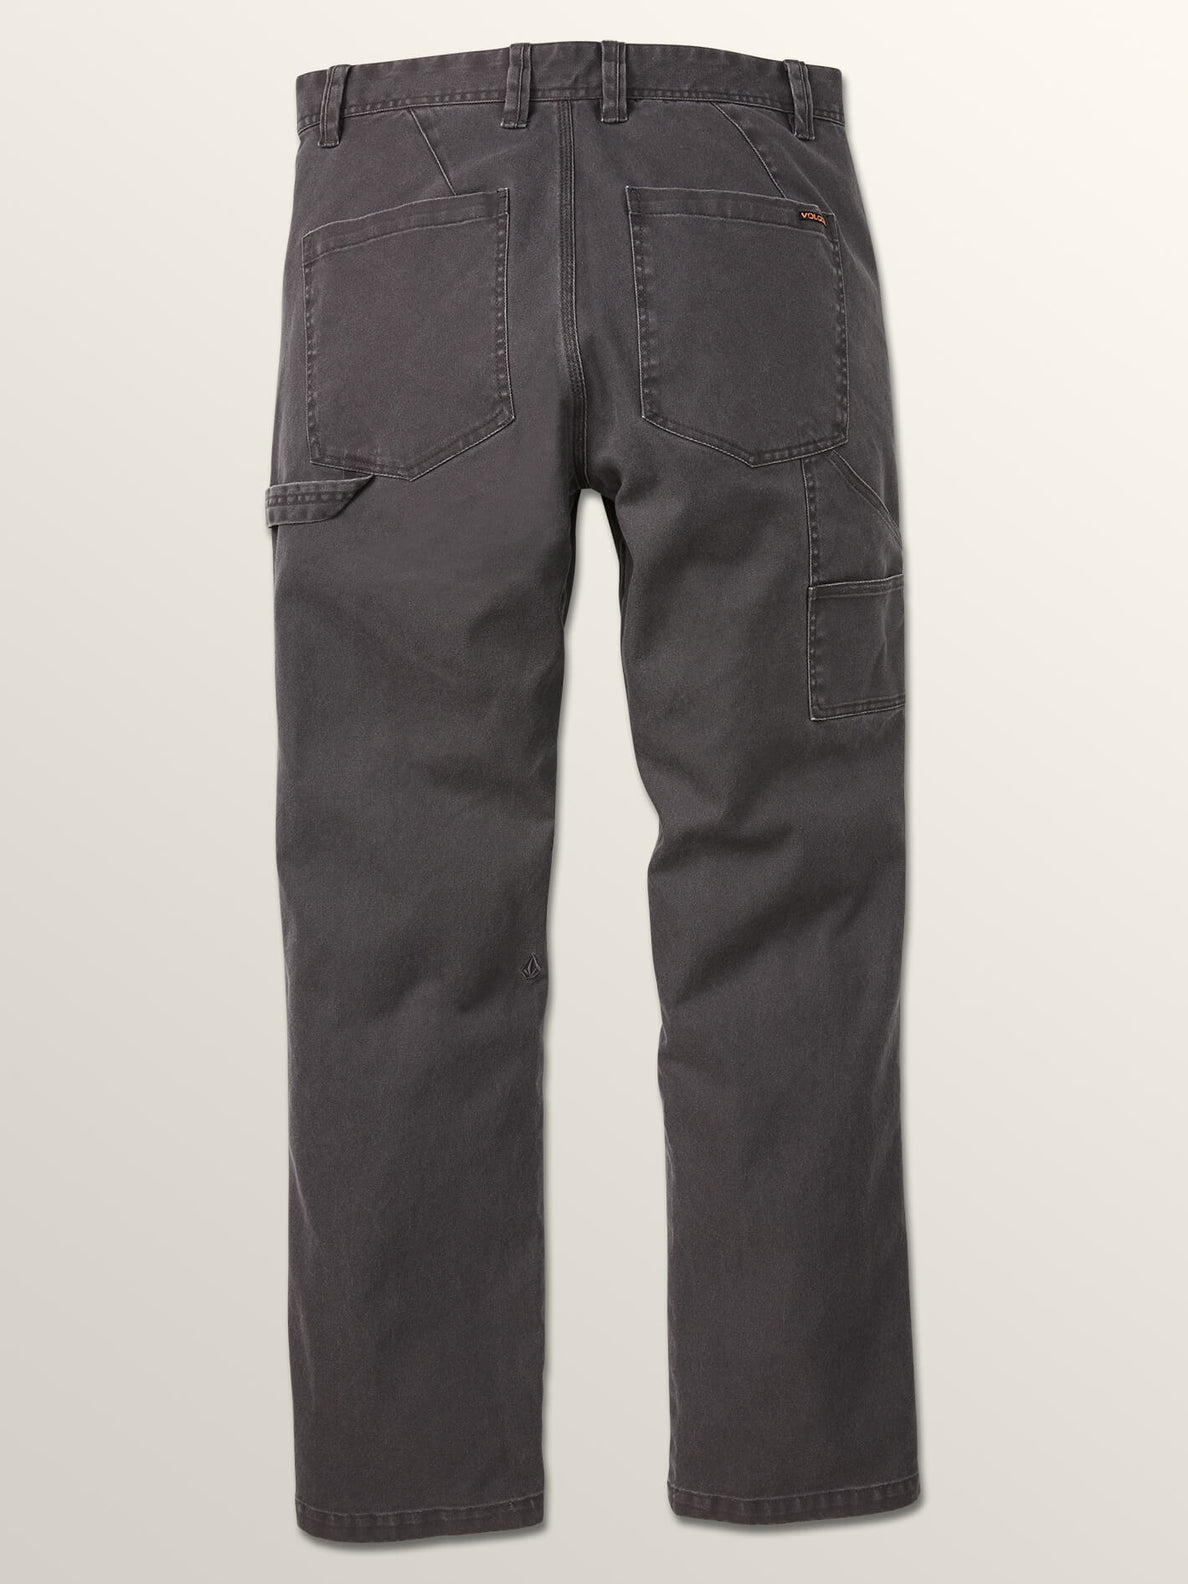 Vsm Whaler Regular Pants In Vintage Black, Fourth Alternate View